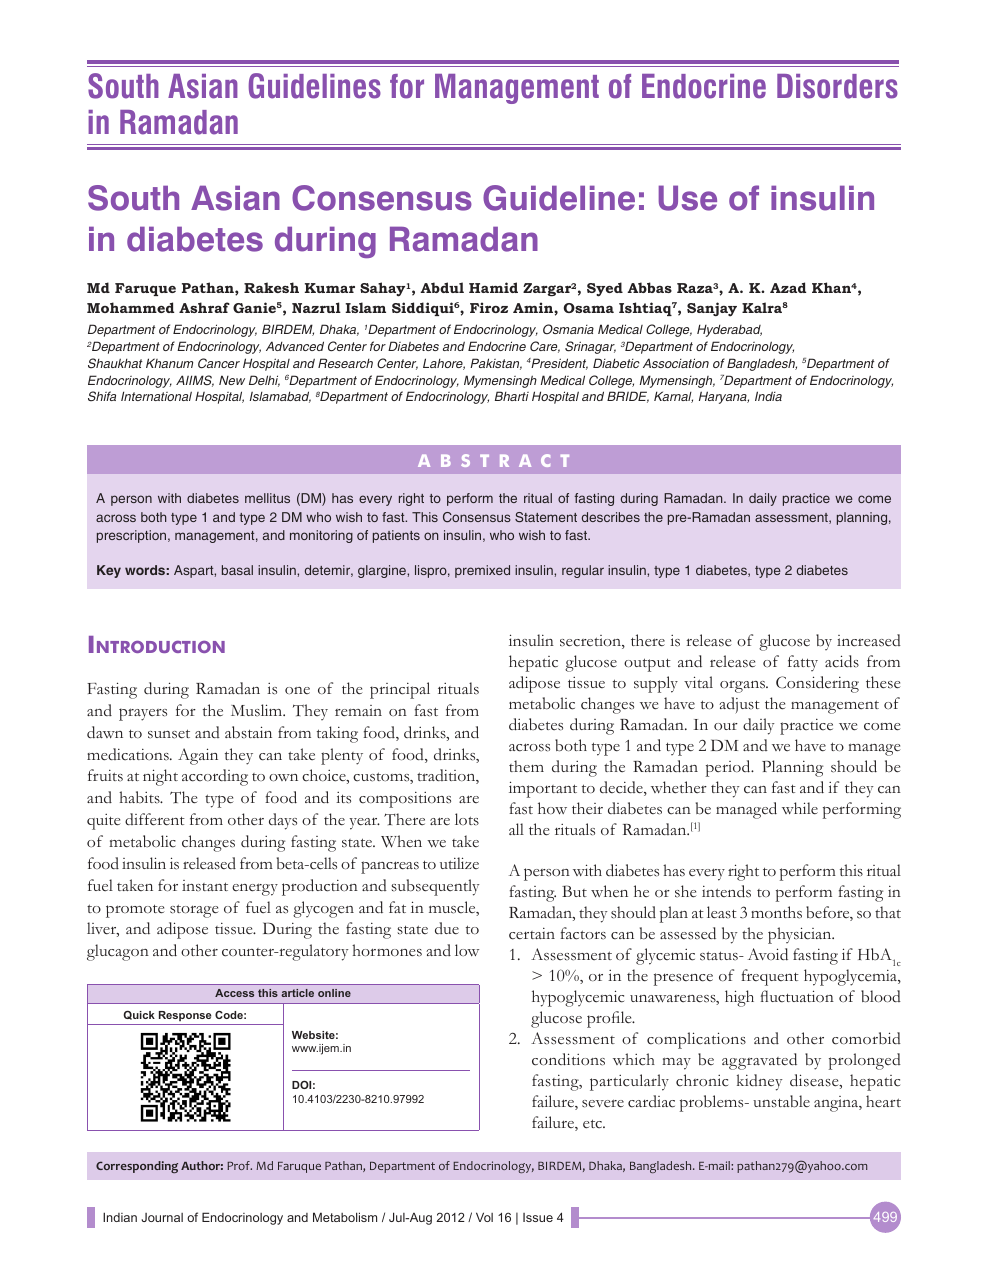 South Asian Consensus Guideline: Use of insulin in diabetes